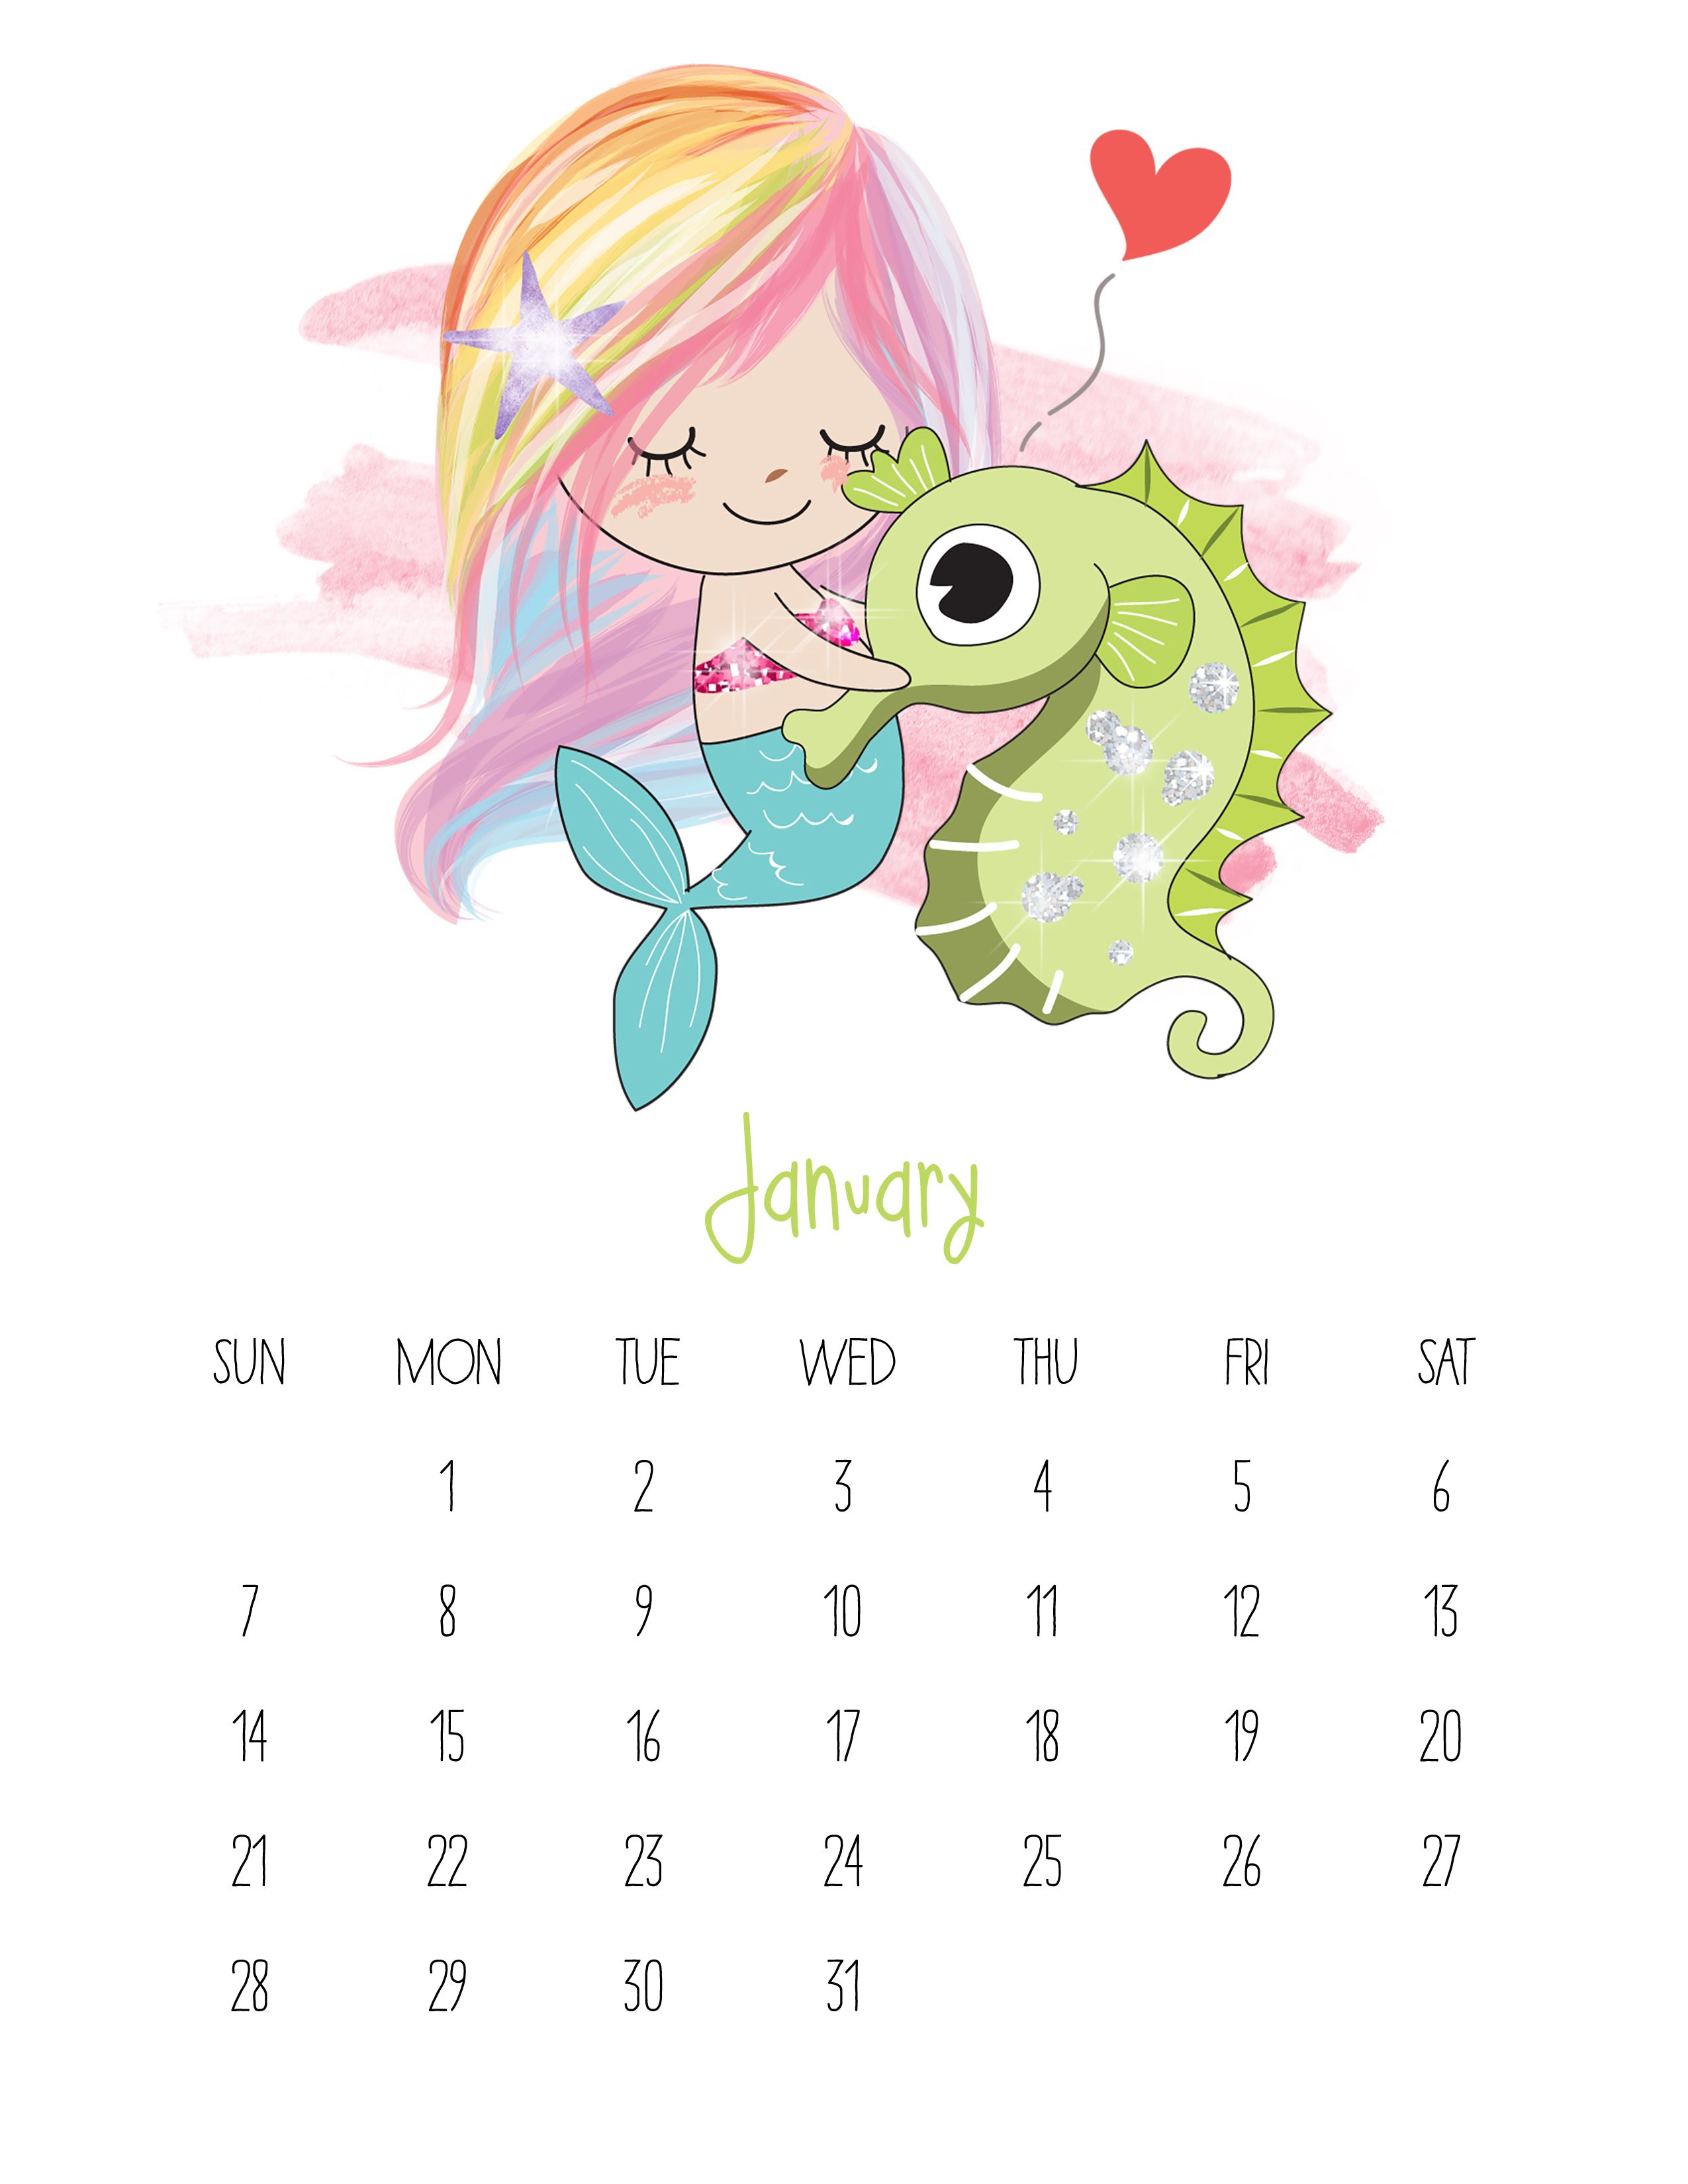 January 2018 Calendar For Kids Maxcalendars Pinterest Calendar